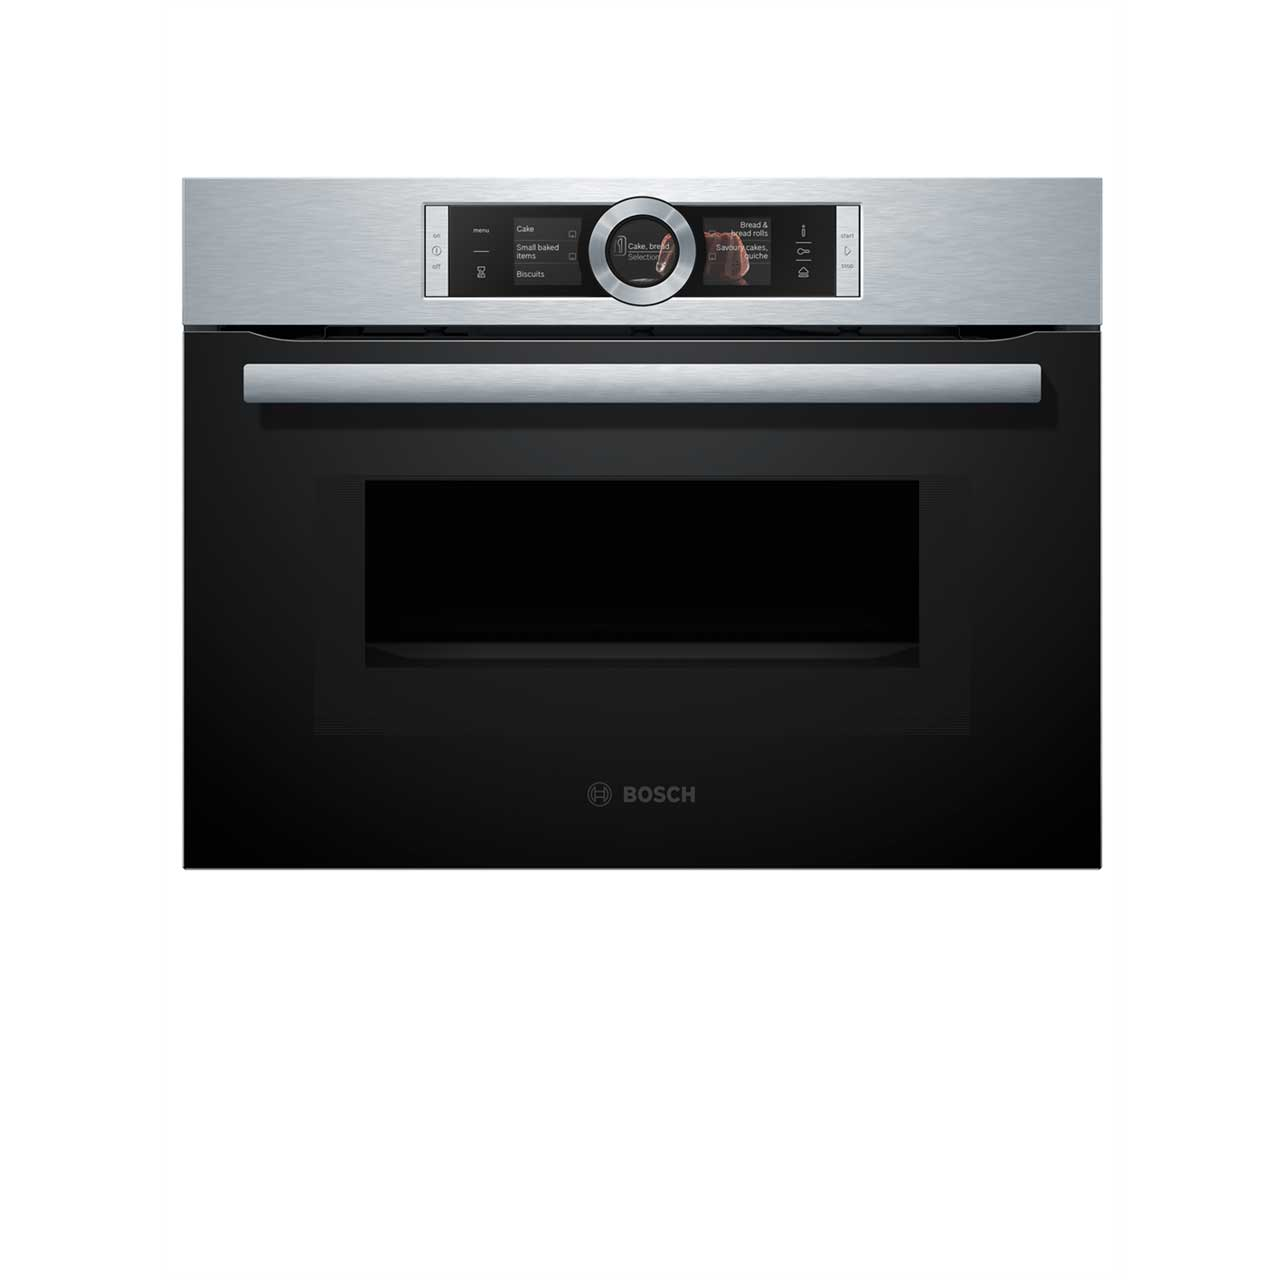 Bosch Serie 8 CNG6764S1B Integrated Microwave Oven in Brushed Steel